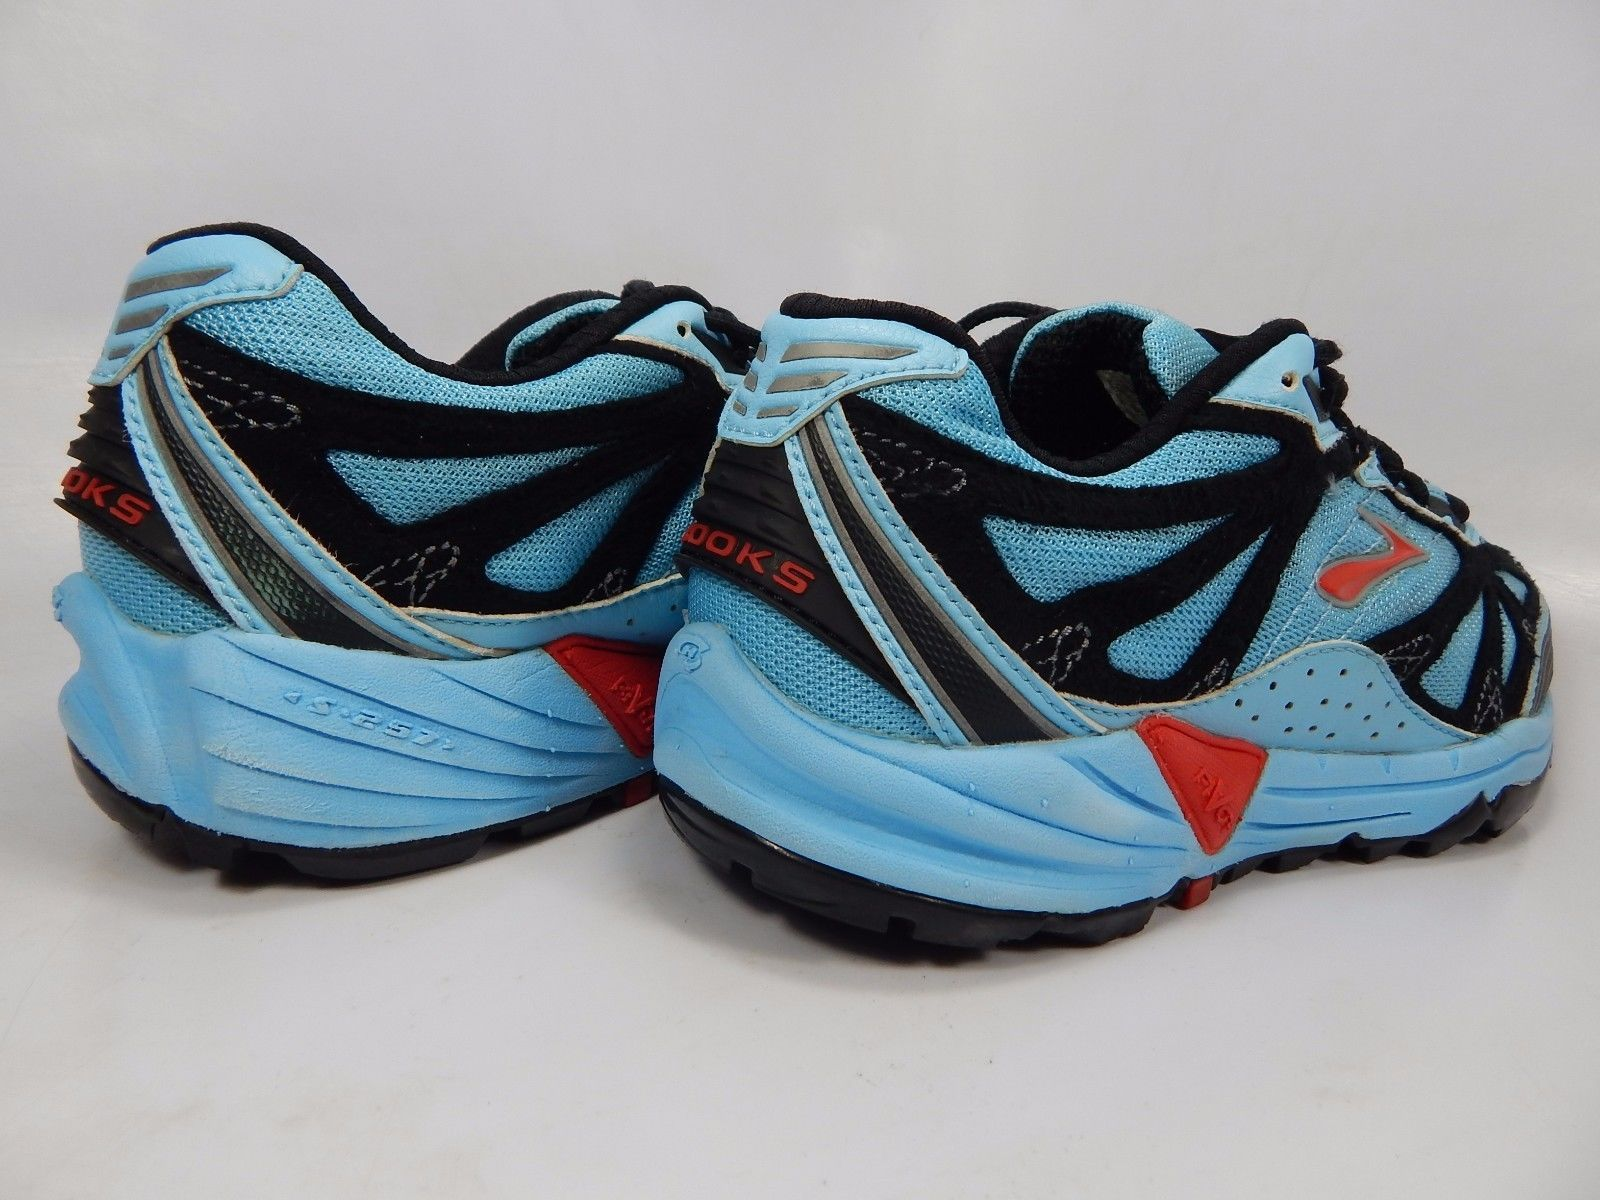 Brooks Cascadia Vintage Women's Trail Running Shoes Size US 8 M (B) EU 39 Blue